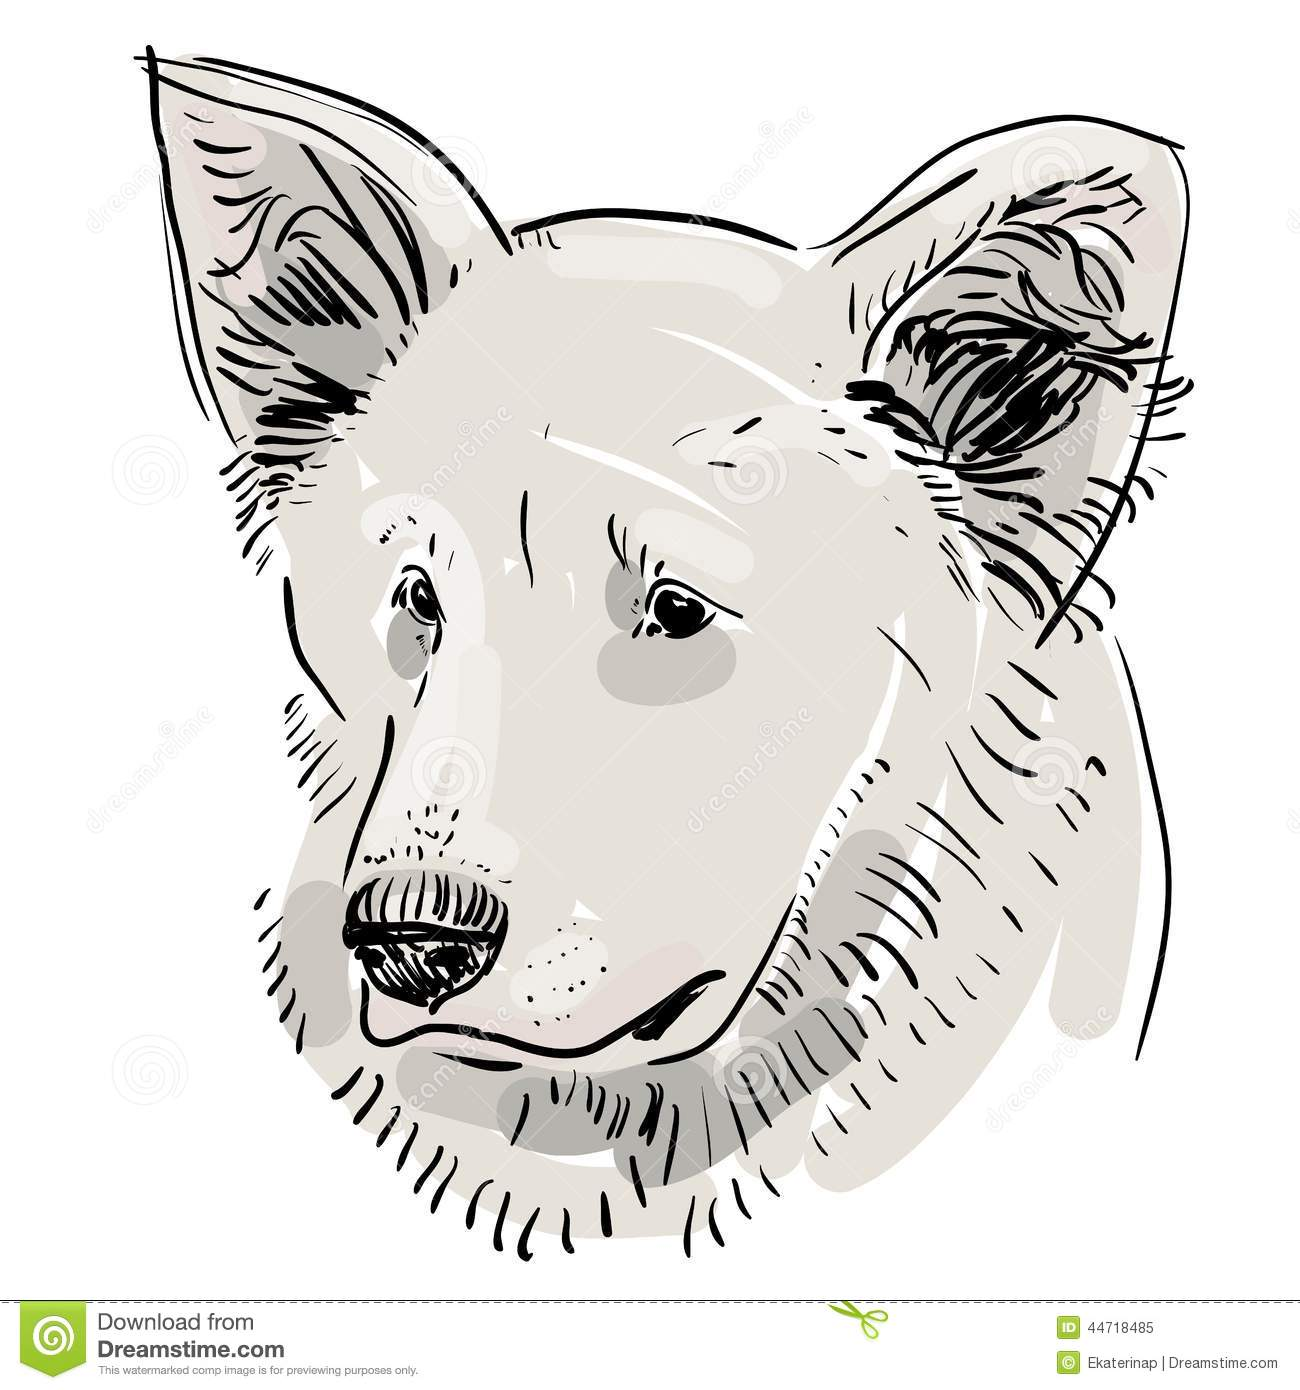 Contour Line Drawing Dog : Head muzzle the dog shepherd sketch drawing black